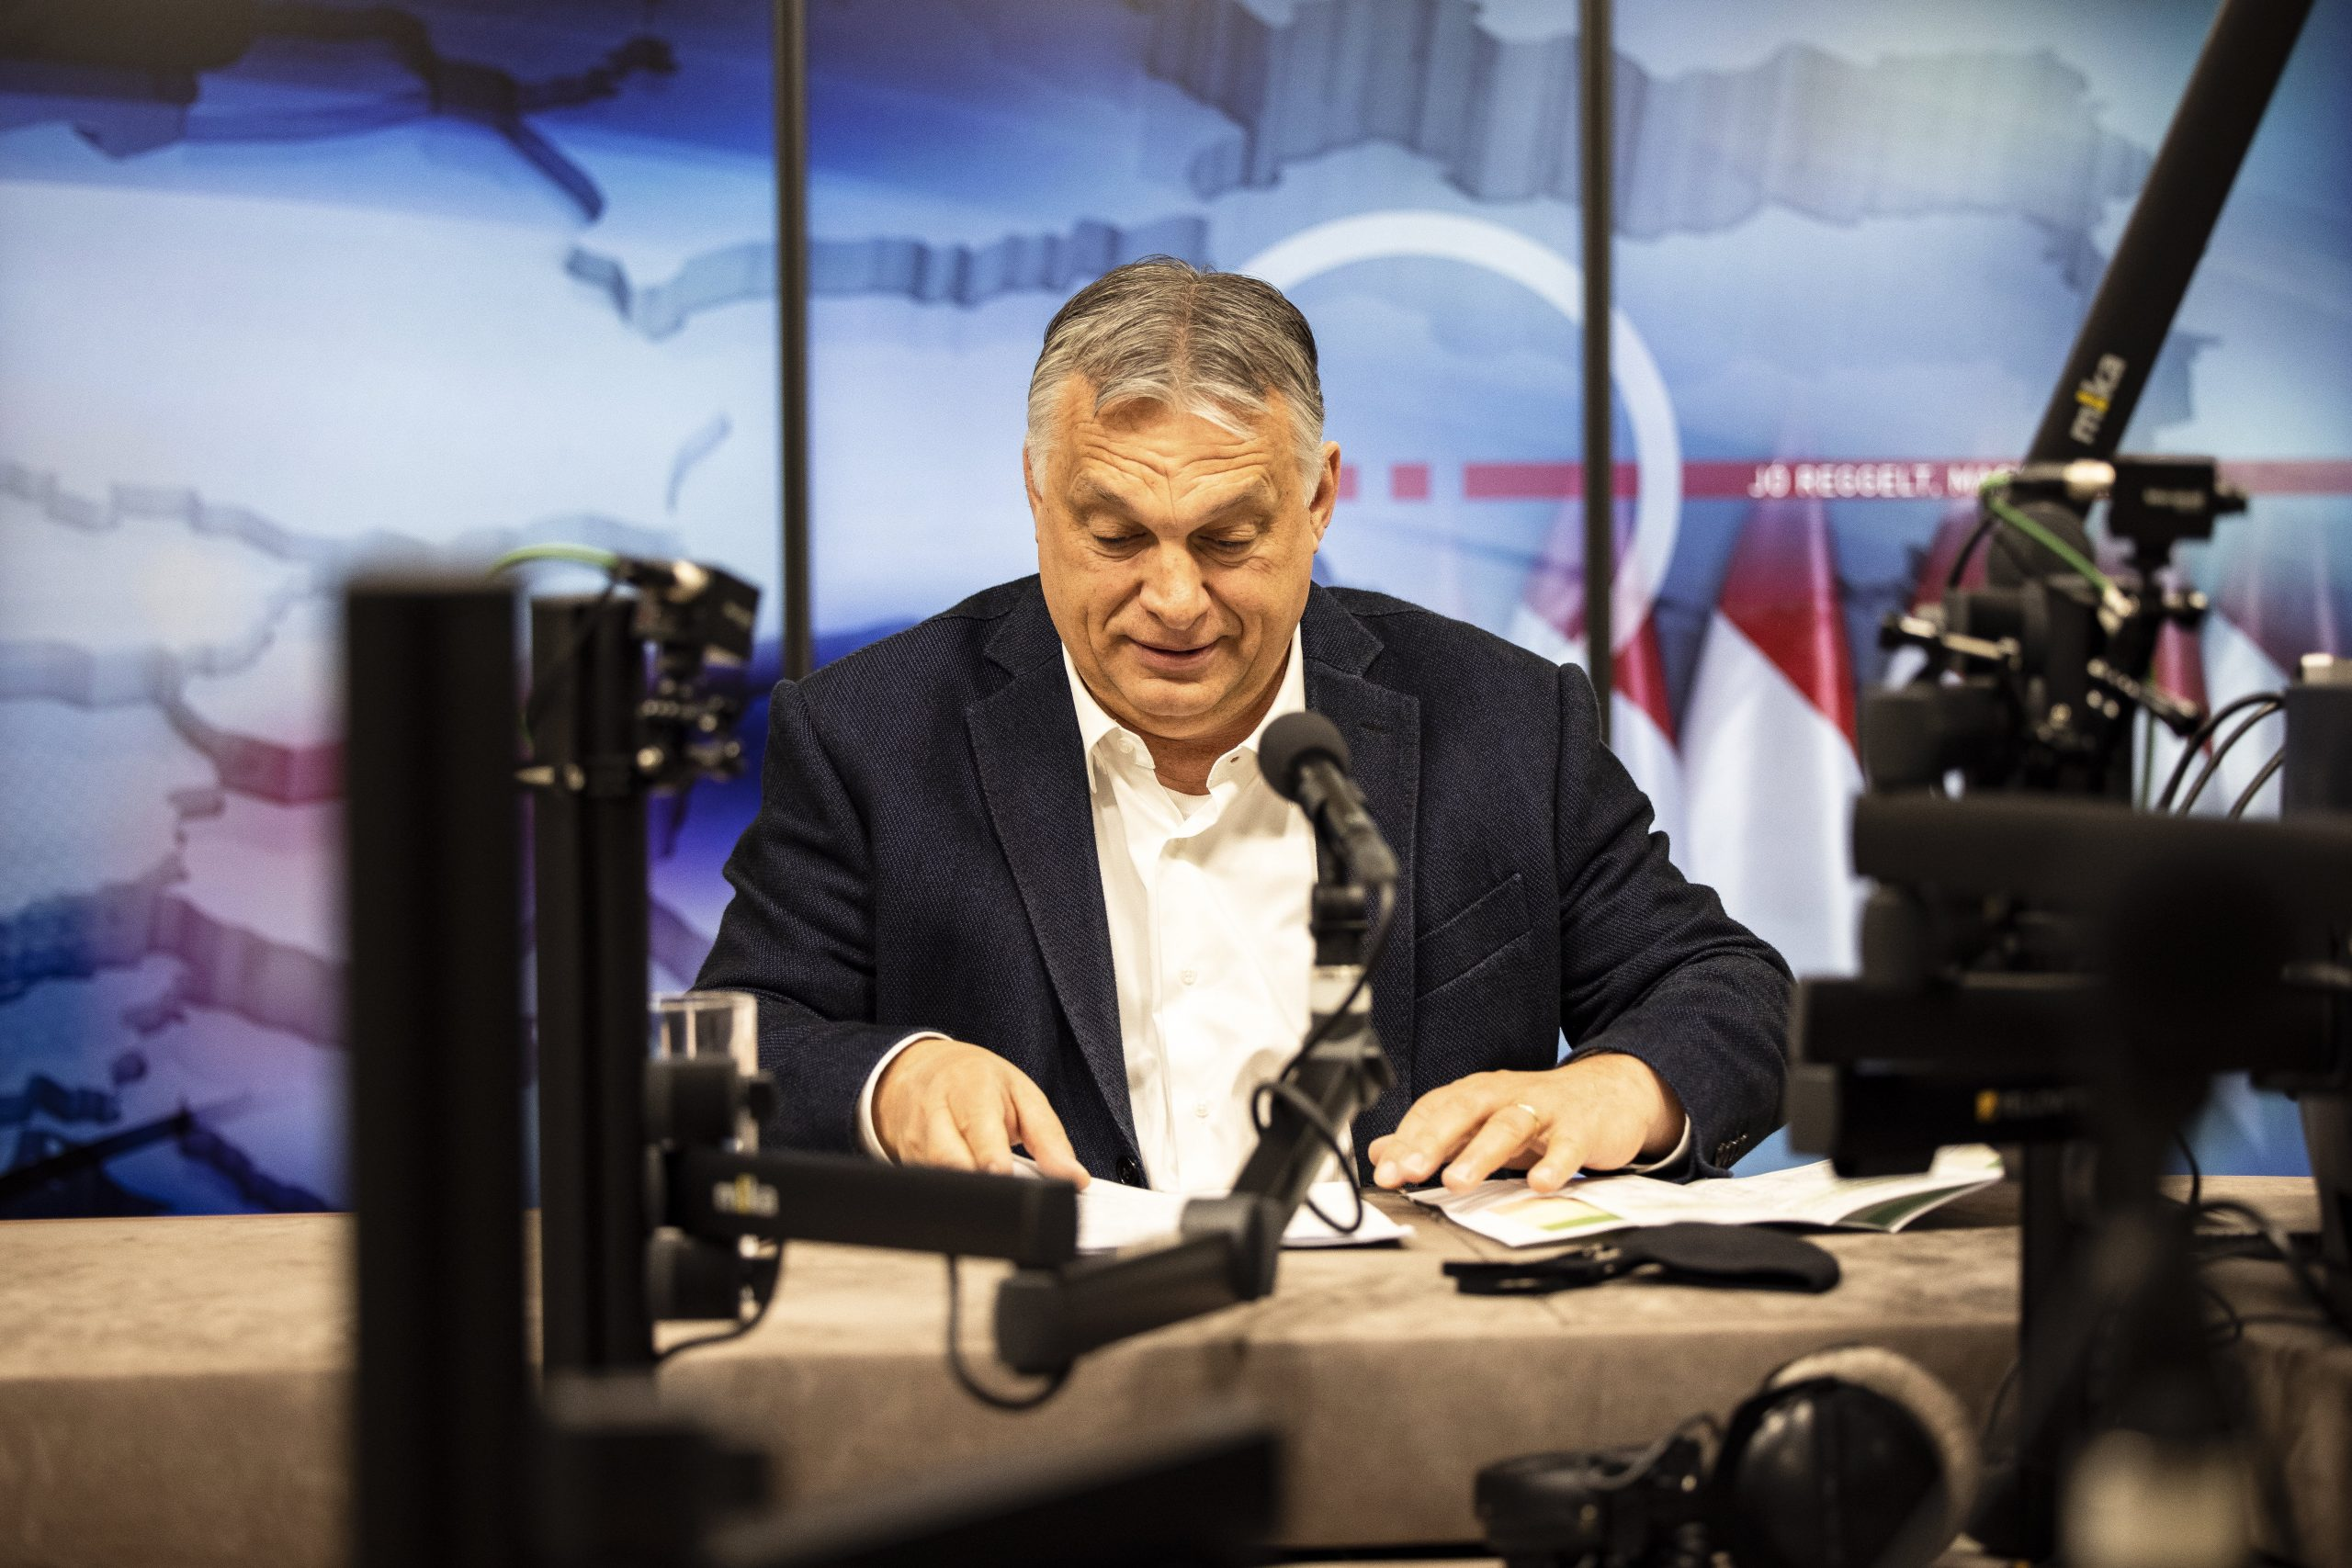 Orbán: Hungary's Vaccination Campaign Among World's Best